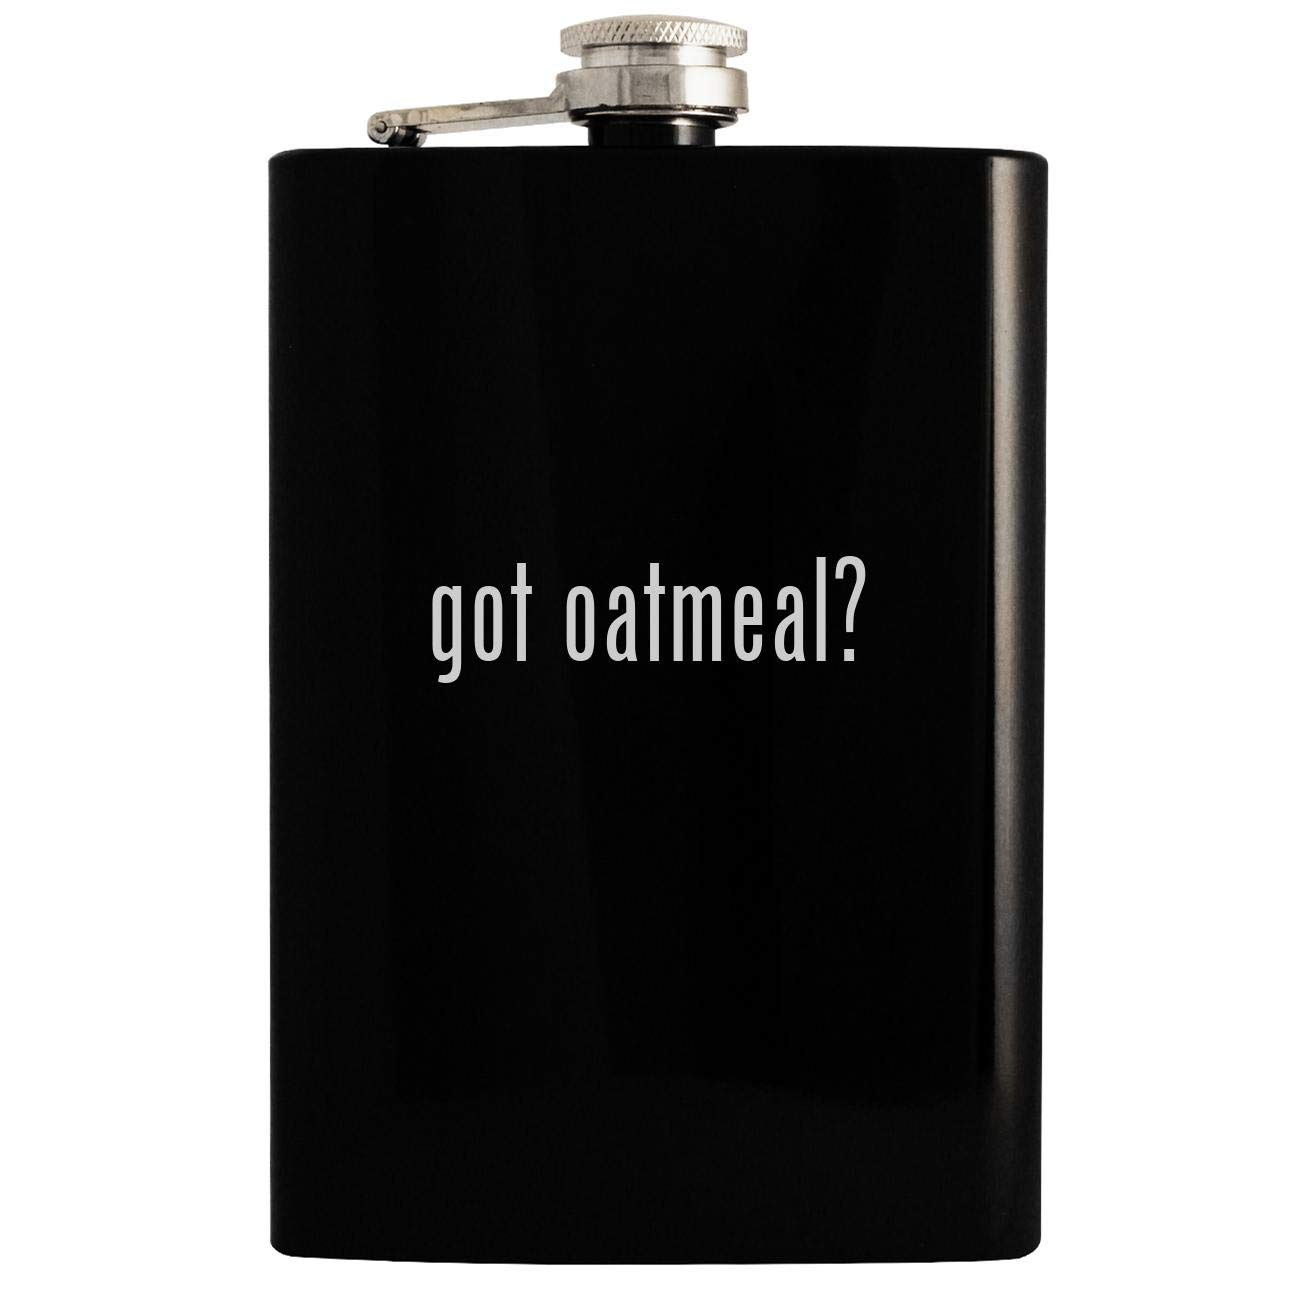 got oatmeal? - Black 8oz Hip Drinking Alcohol Flask